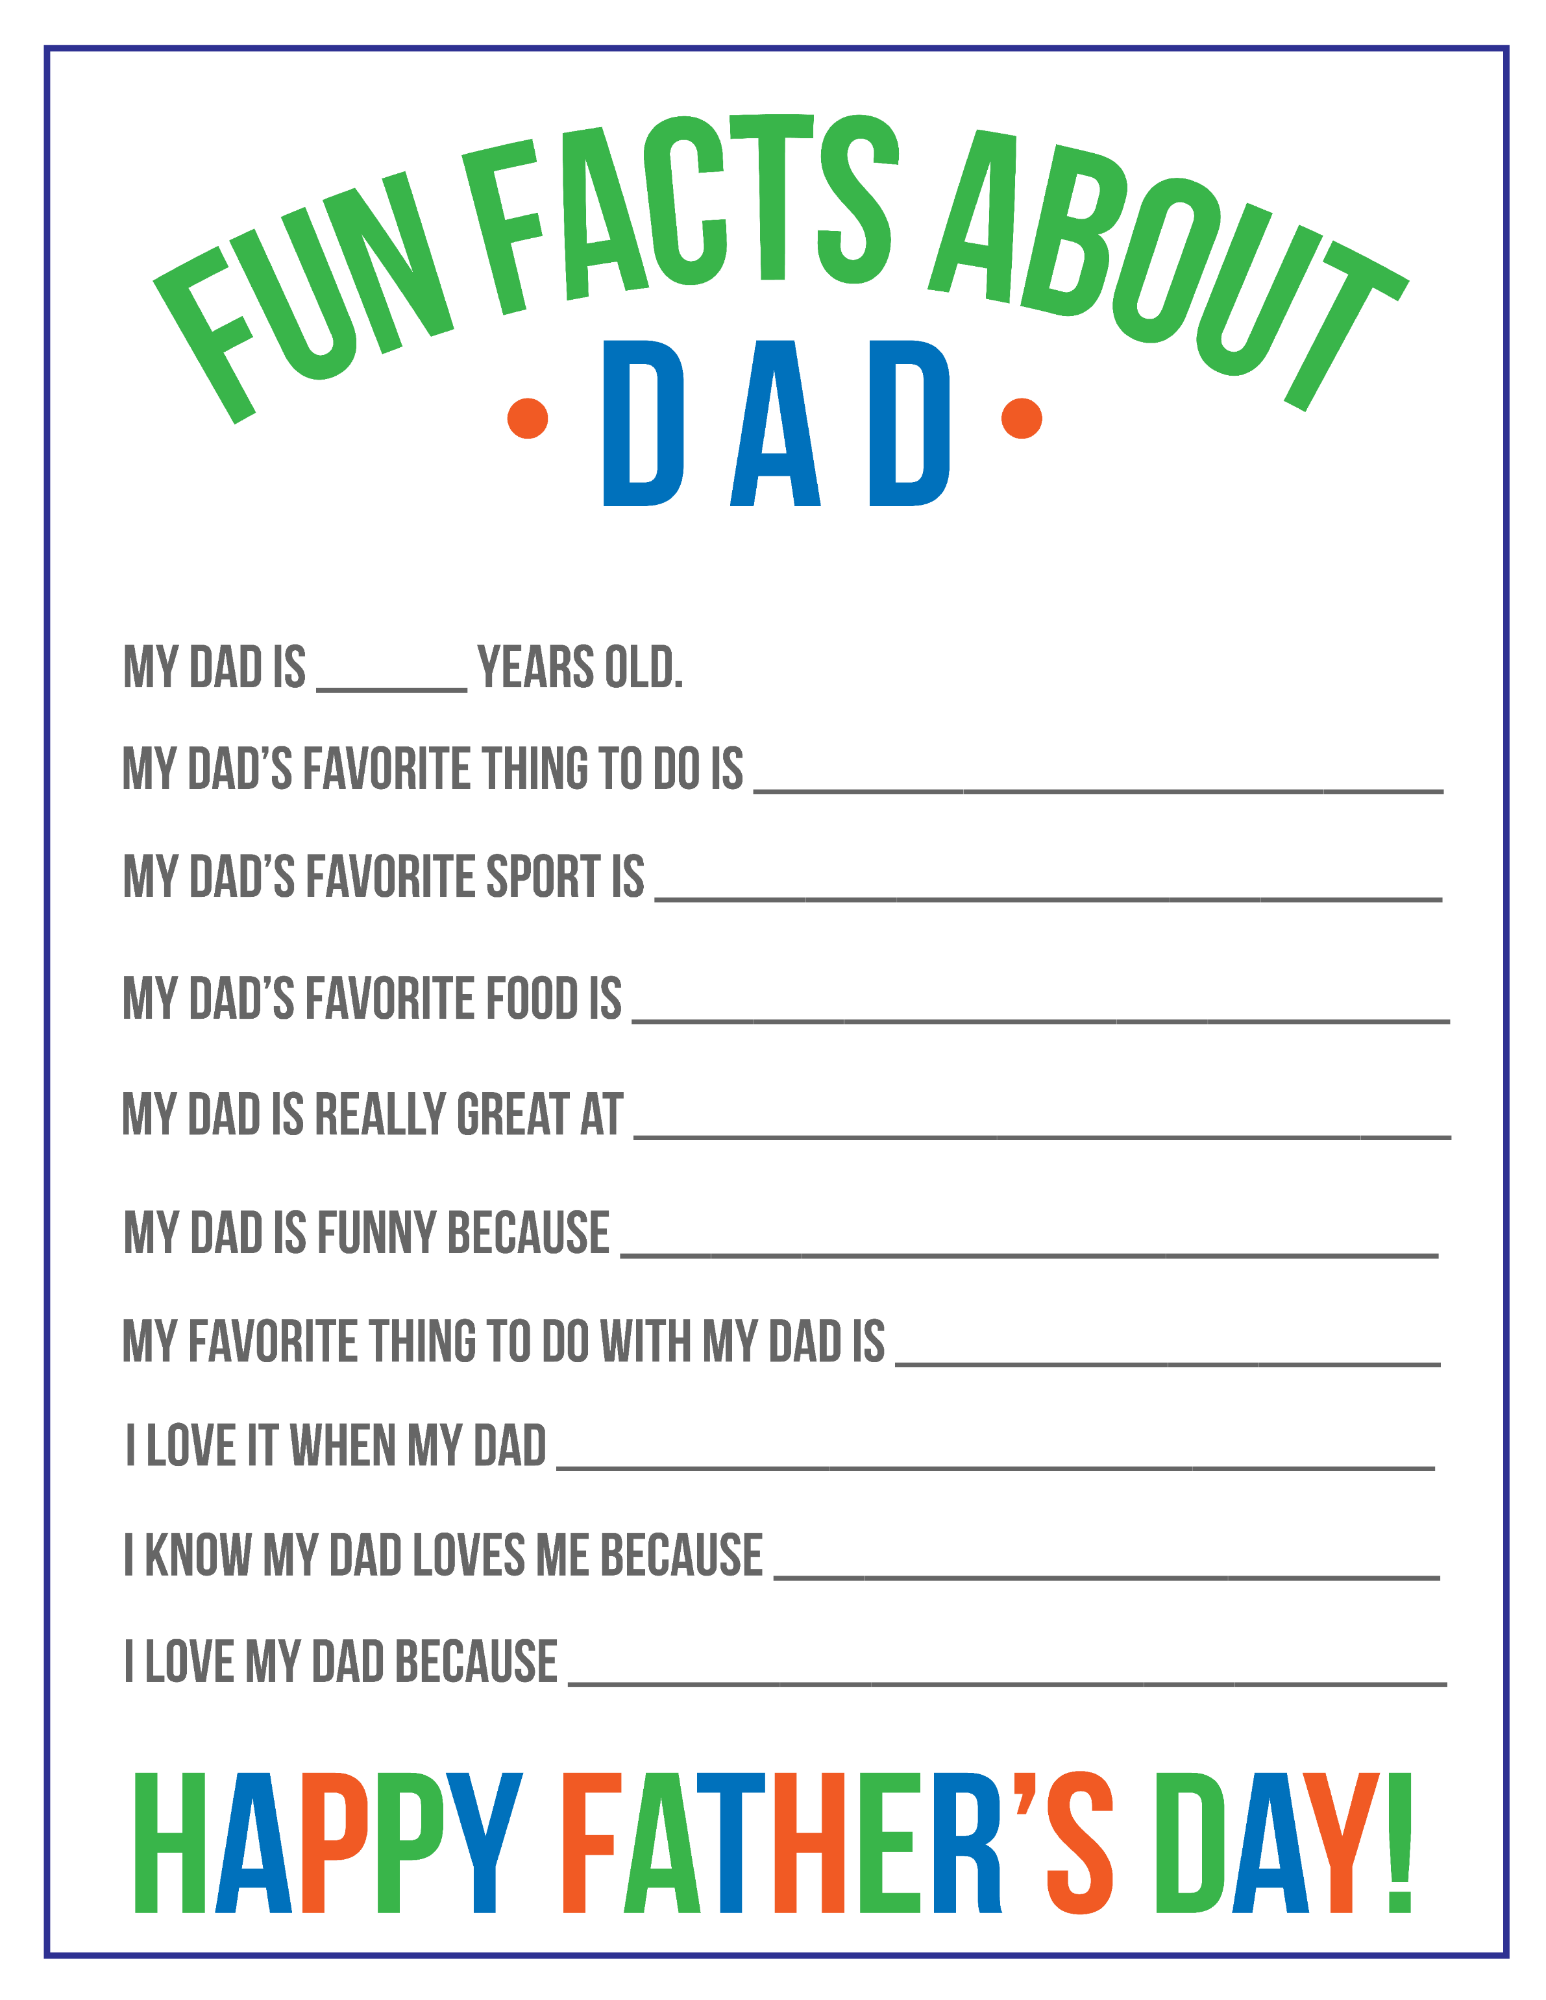 picture regarding All About My Dad Printable identify Enjoyment Information and facts Around Father Printable for Fathers Working day Conveniently